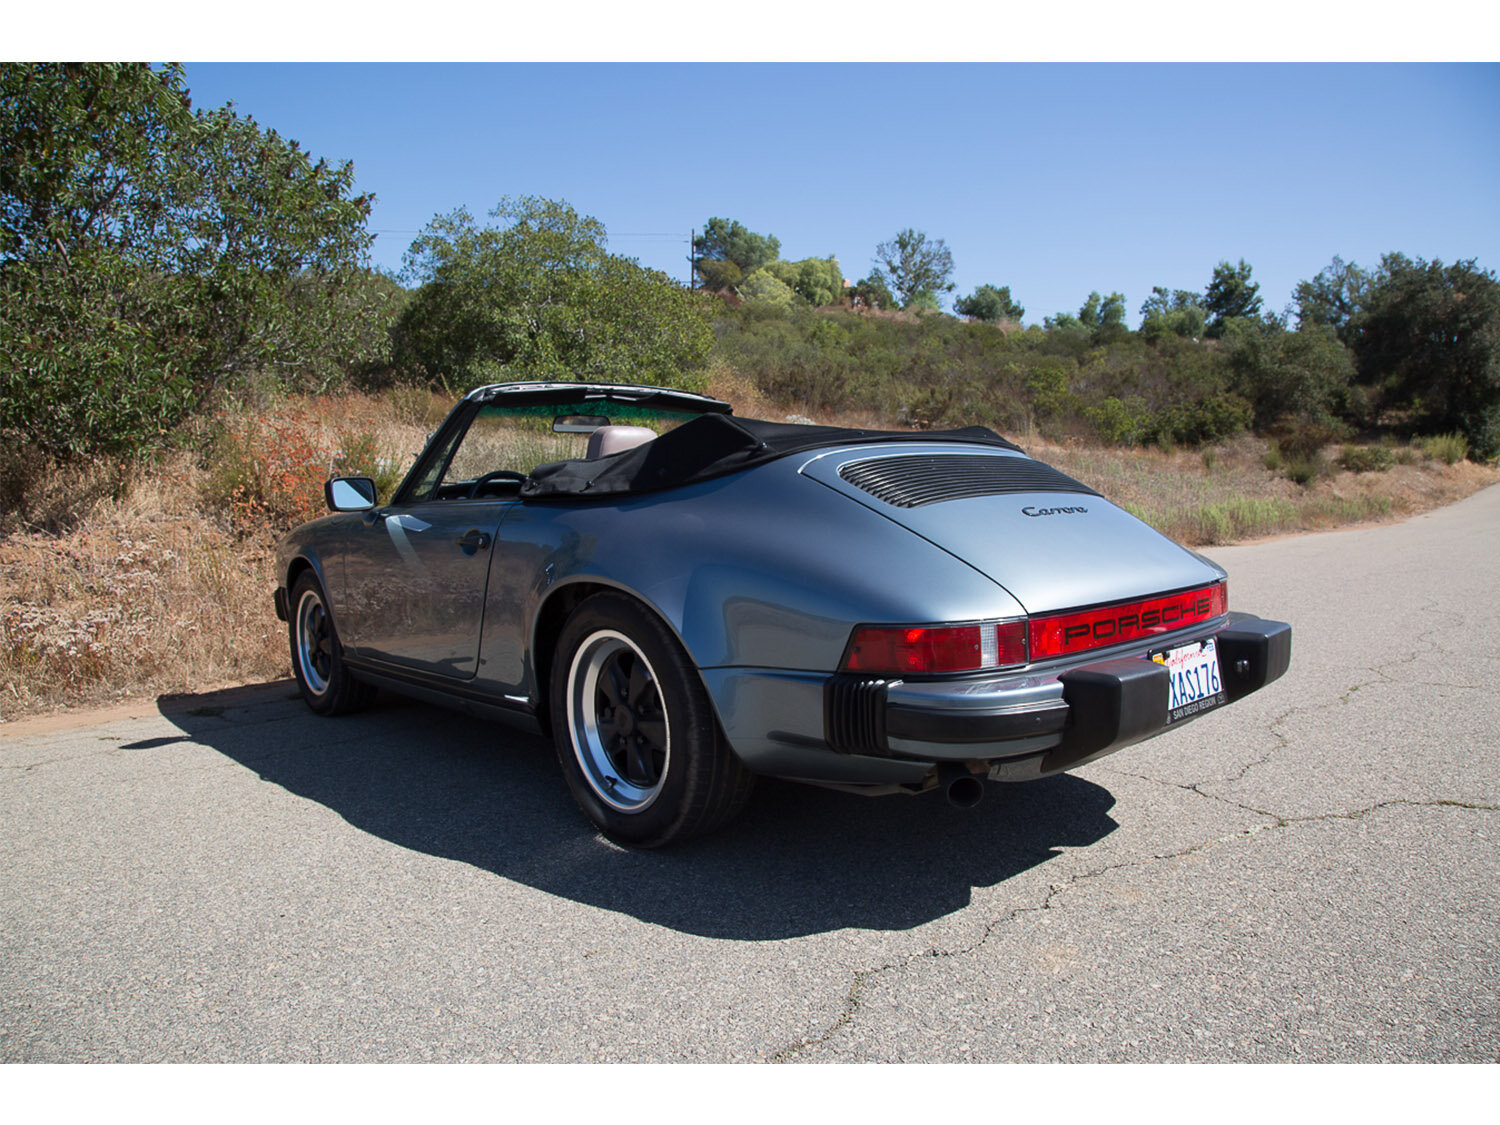 1984-carrera-cabriolet-slate-blue-911-sc-for-sale-makellos-classics_0001s_0000s_0023_1B7A6617.jpg